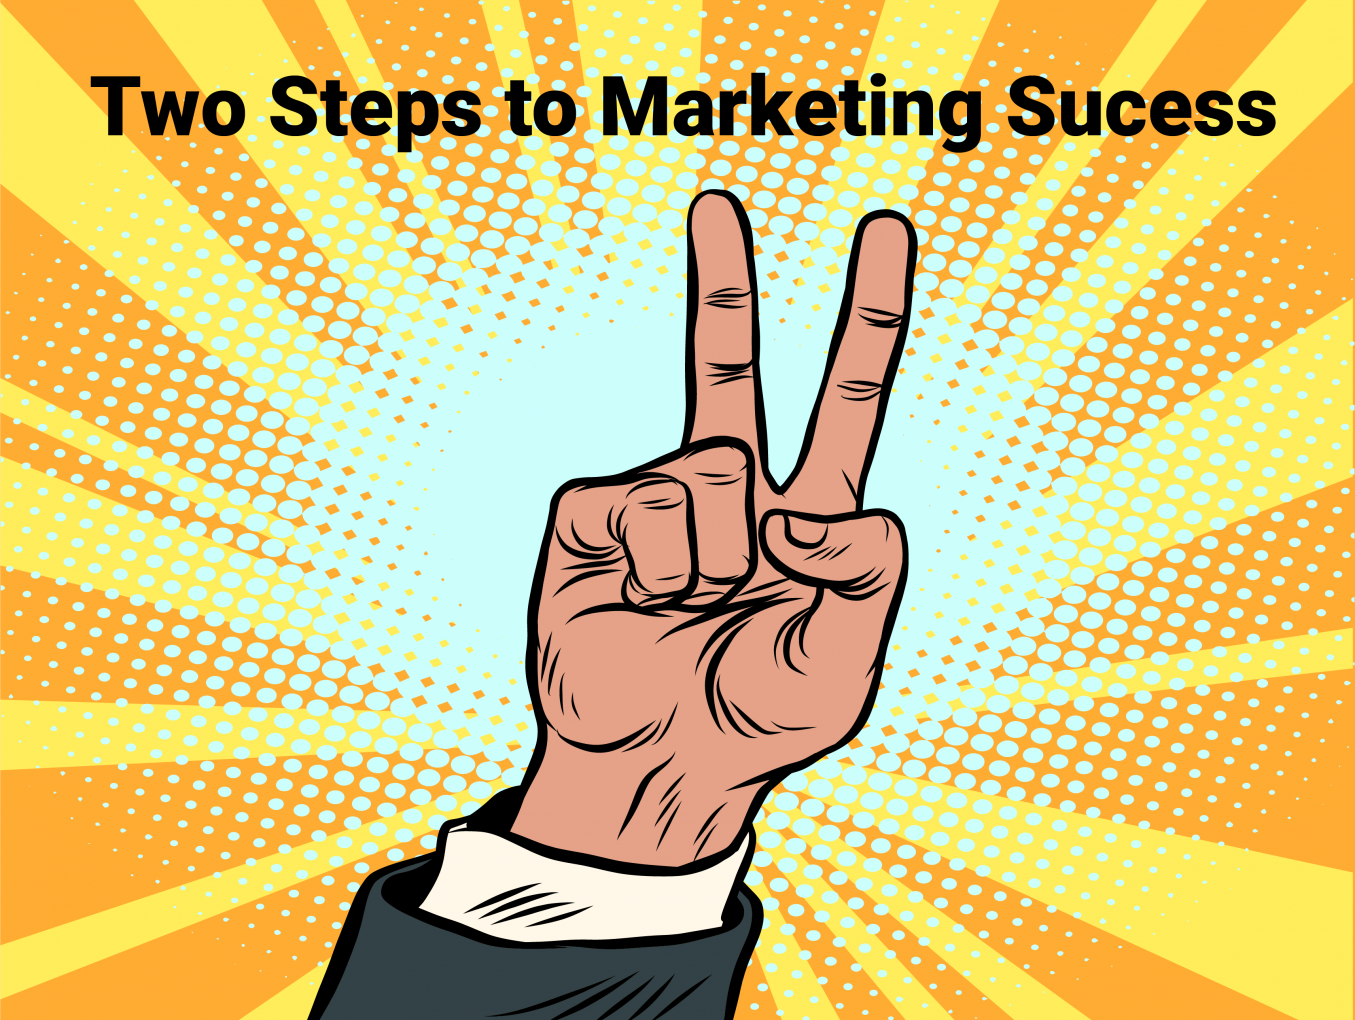 The Two Elements of Marketing Strategy